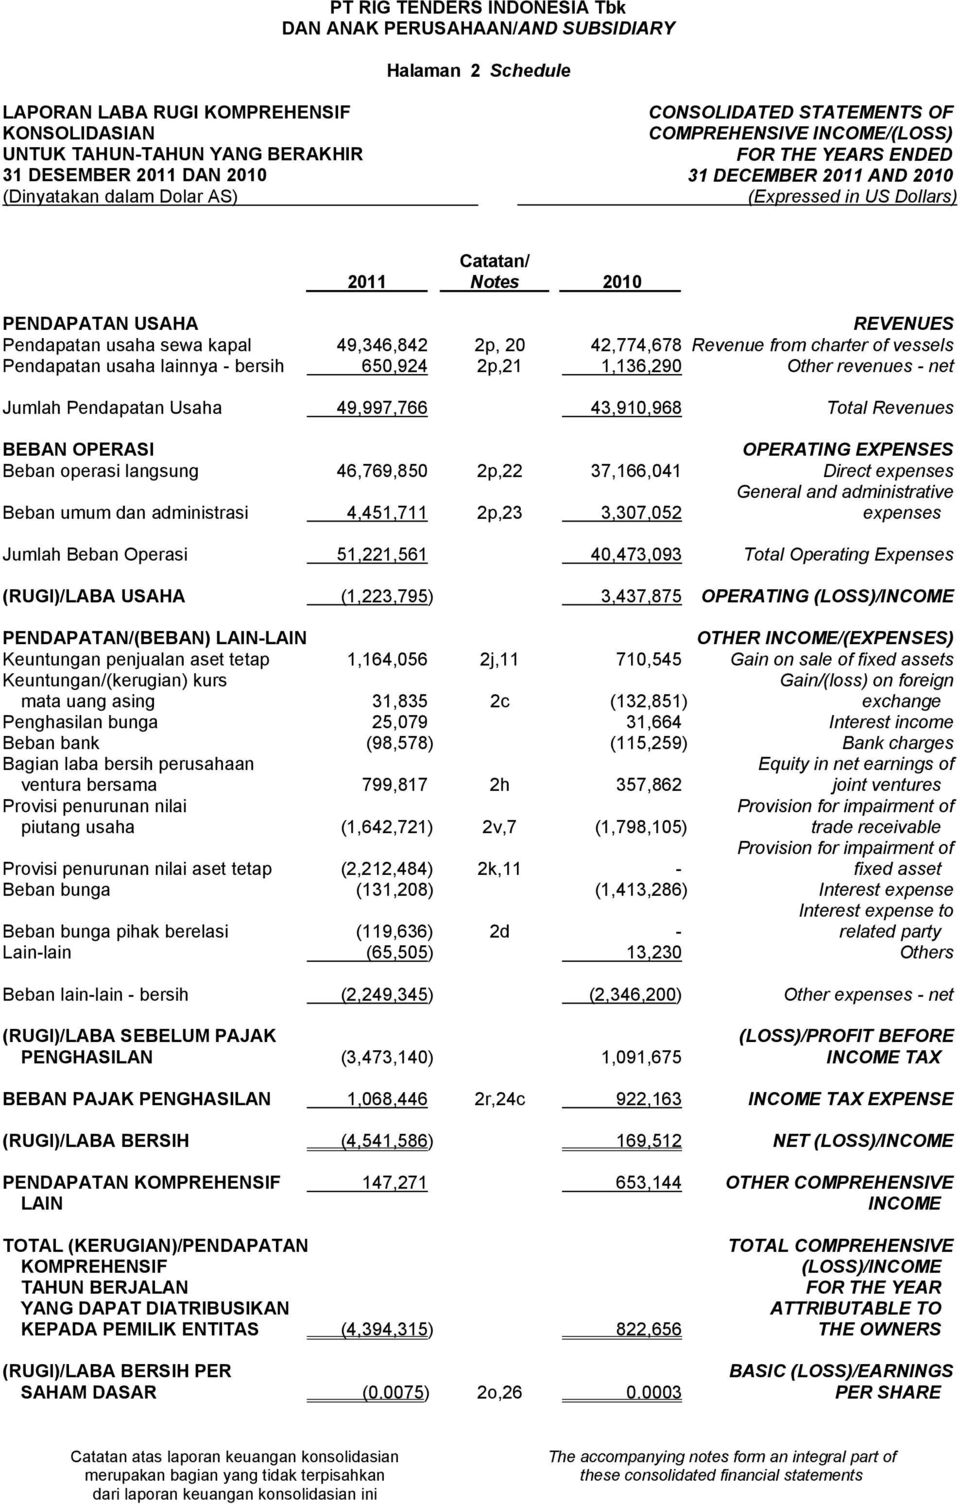 Other revenues - net Jumlah Pendapatan Usaha 49,997,766 43,910,968 Total Revenues BEBAN OPERASI OPERATING EXPENSES Beban operasi langsung 46,769,850 2p,22 37,166,041 Direct expenses General and